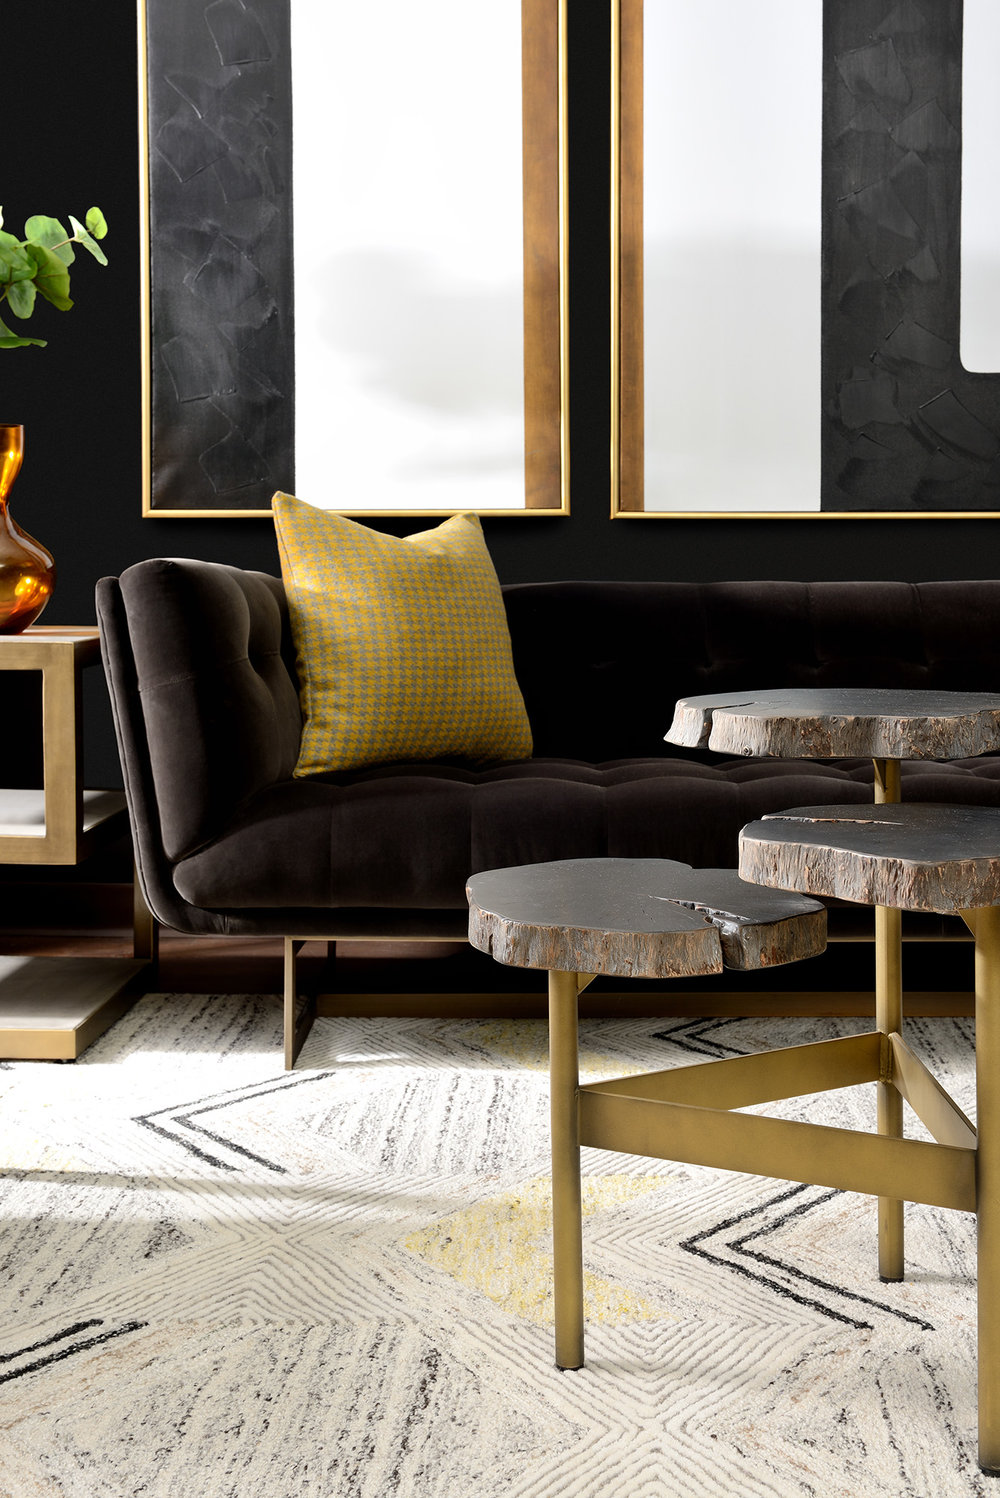 Styling for Canadian Home Trends at the Sunpan Imports Showroom